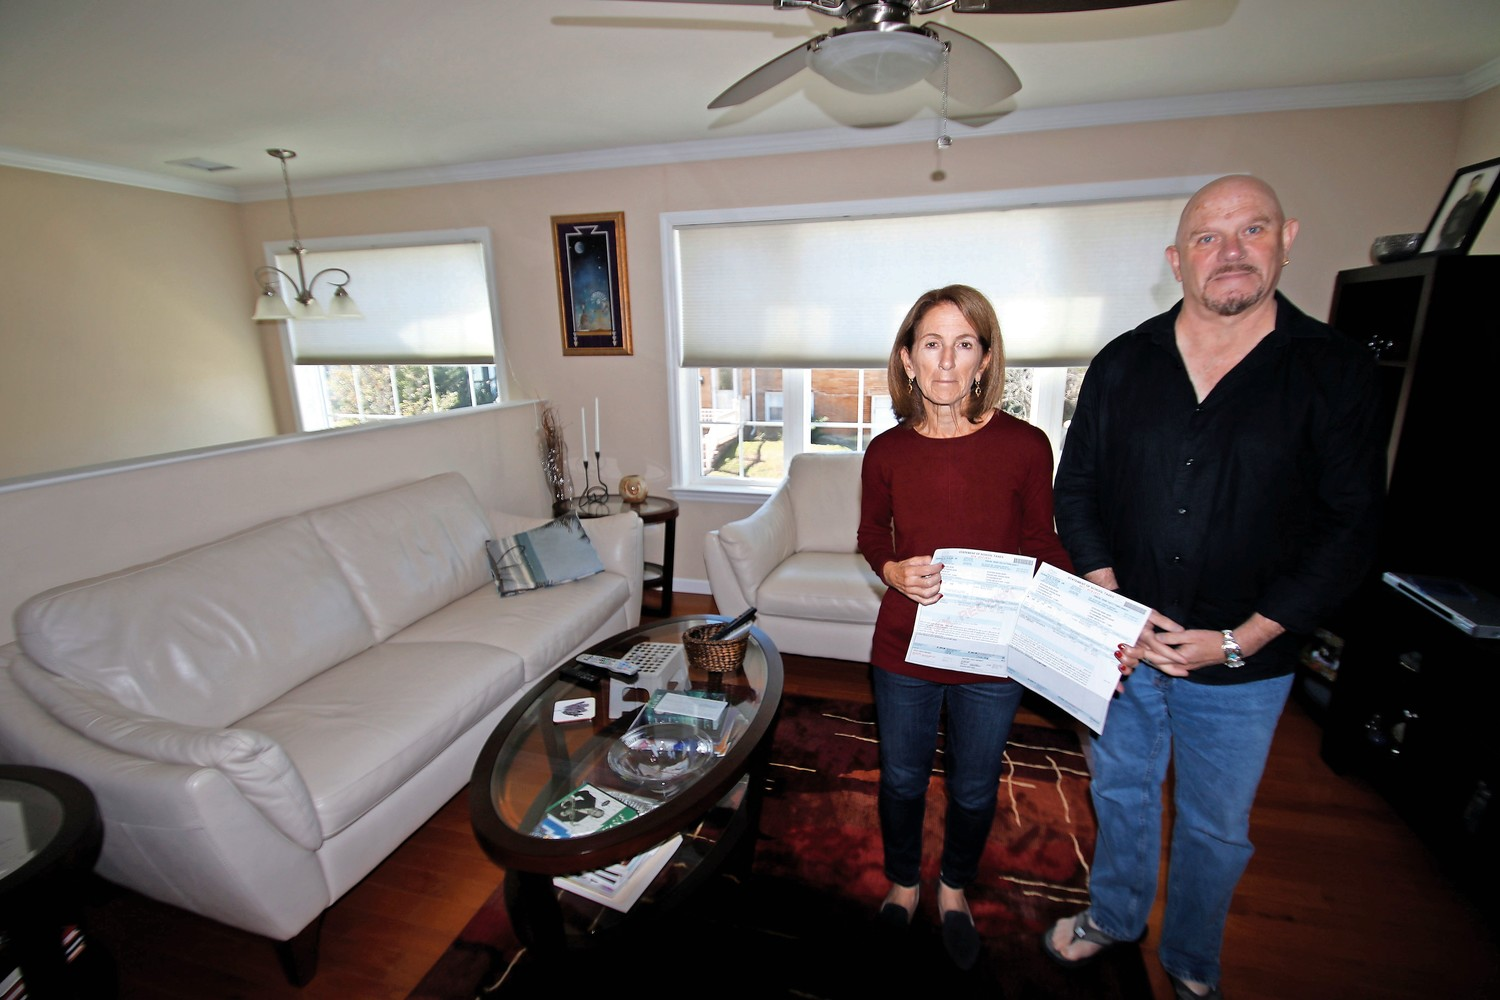 Fran and Steve Adelson were among the many residents who were shocked when they opened their school tax bills last week. The Adelsons were required to completely rebuild their Sandy-damaged home. Its square footage did not increase, they said, but their taxes doubled.